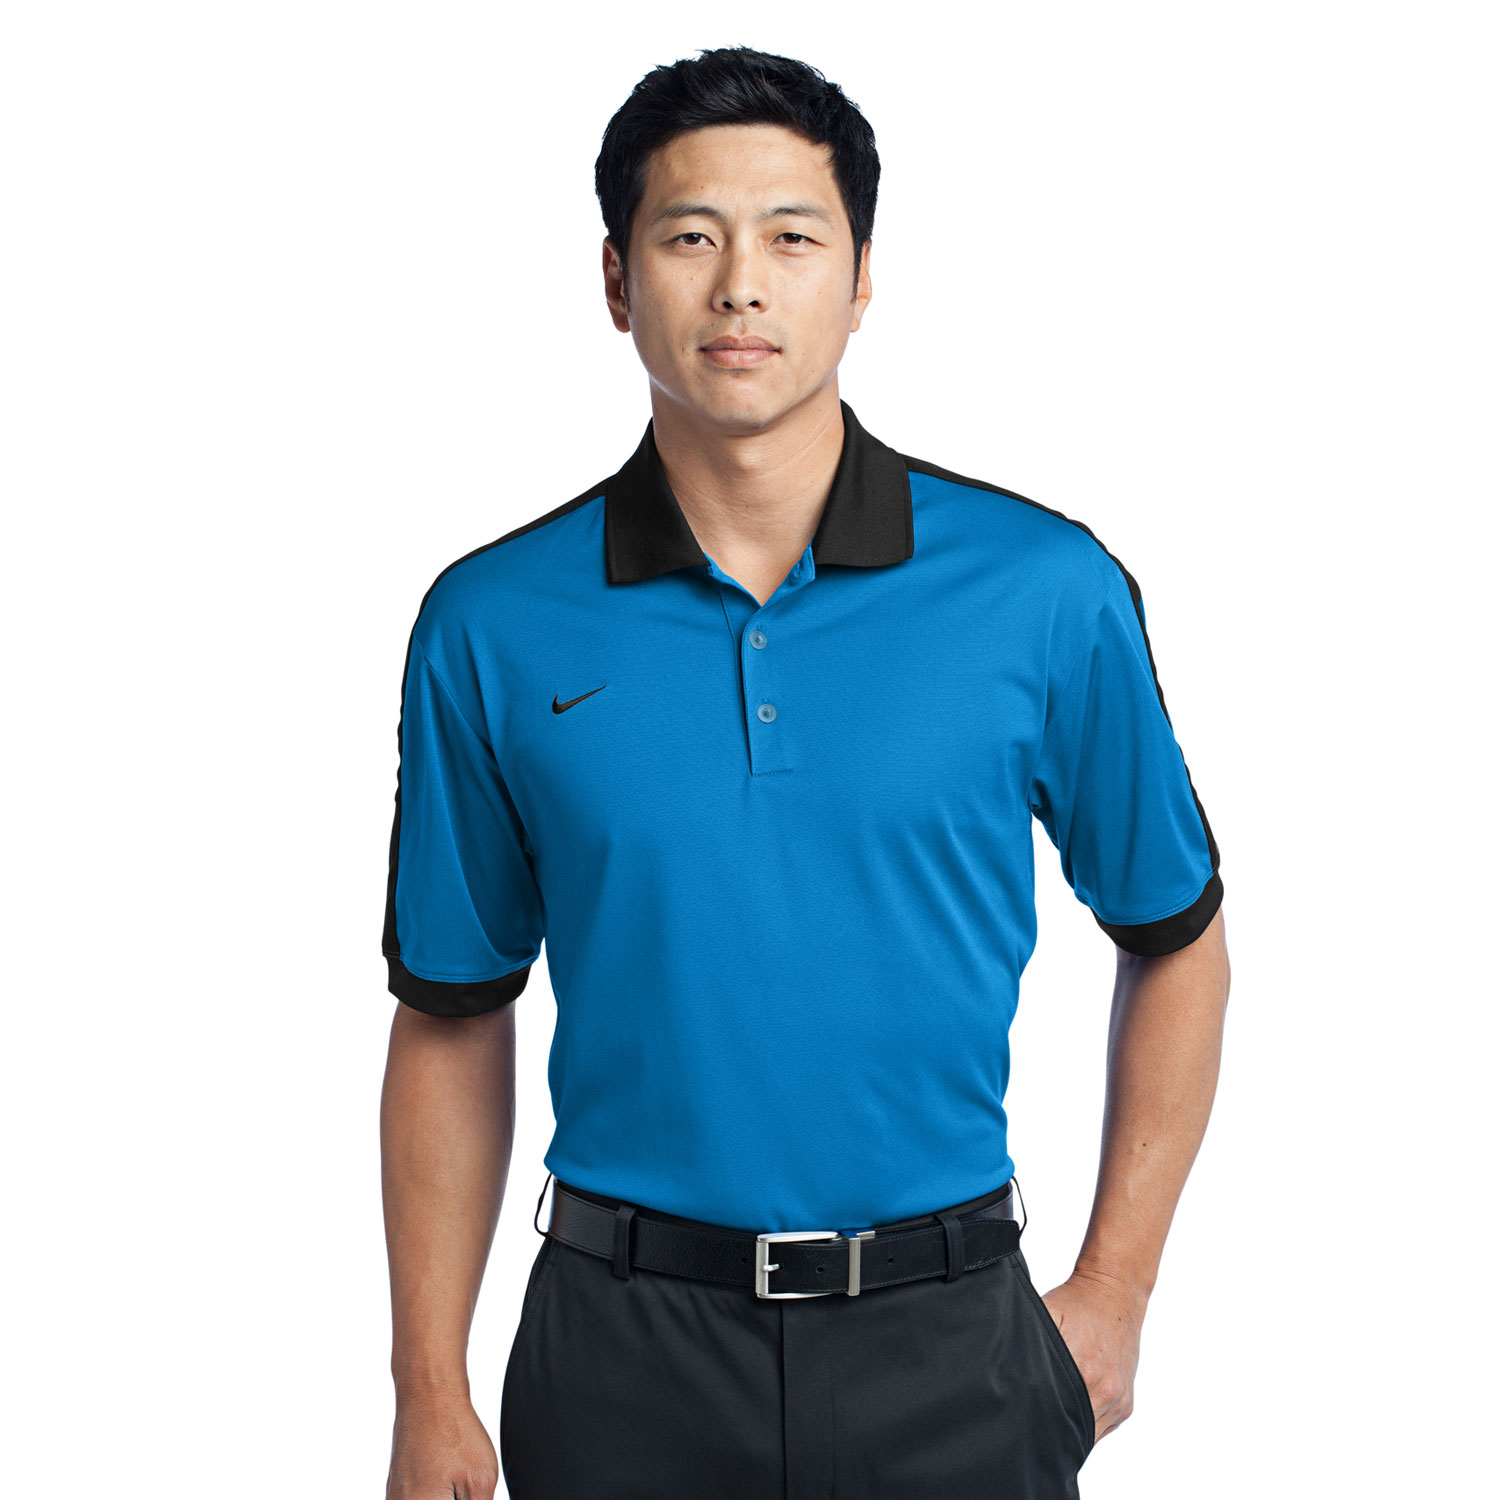 Nike golf contrast two tone color men 39 s dri fit n98 polo for Mens dri fit polo shirts wholesale